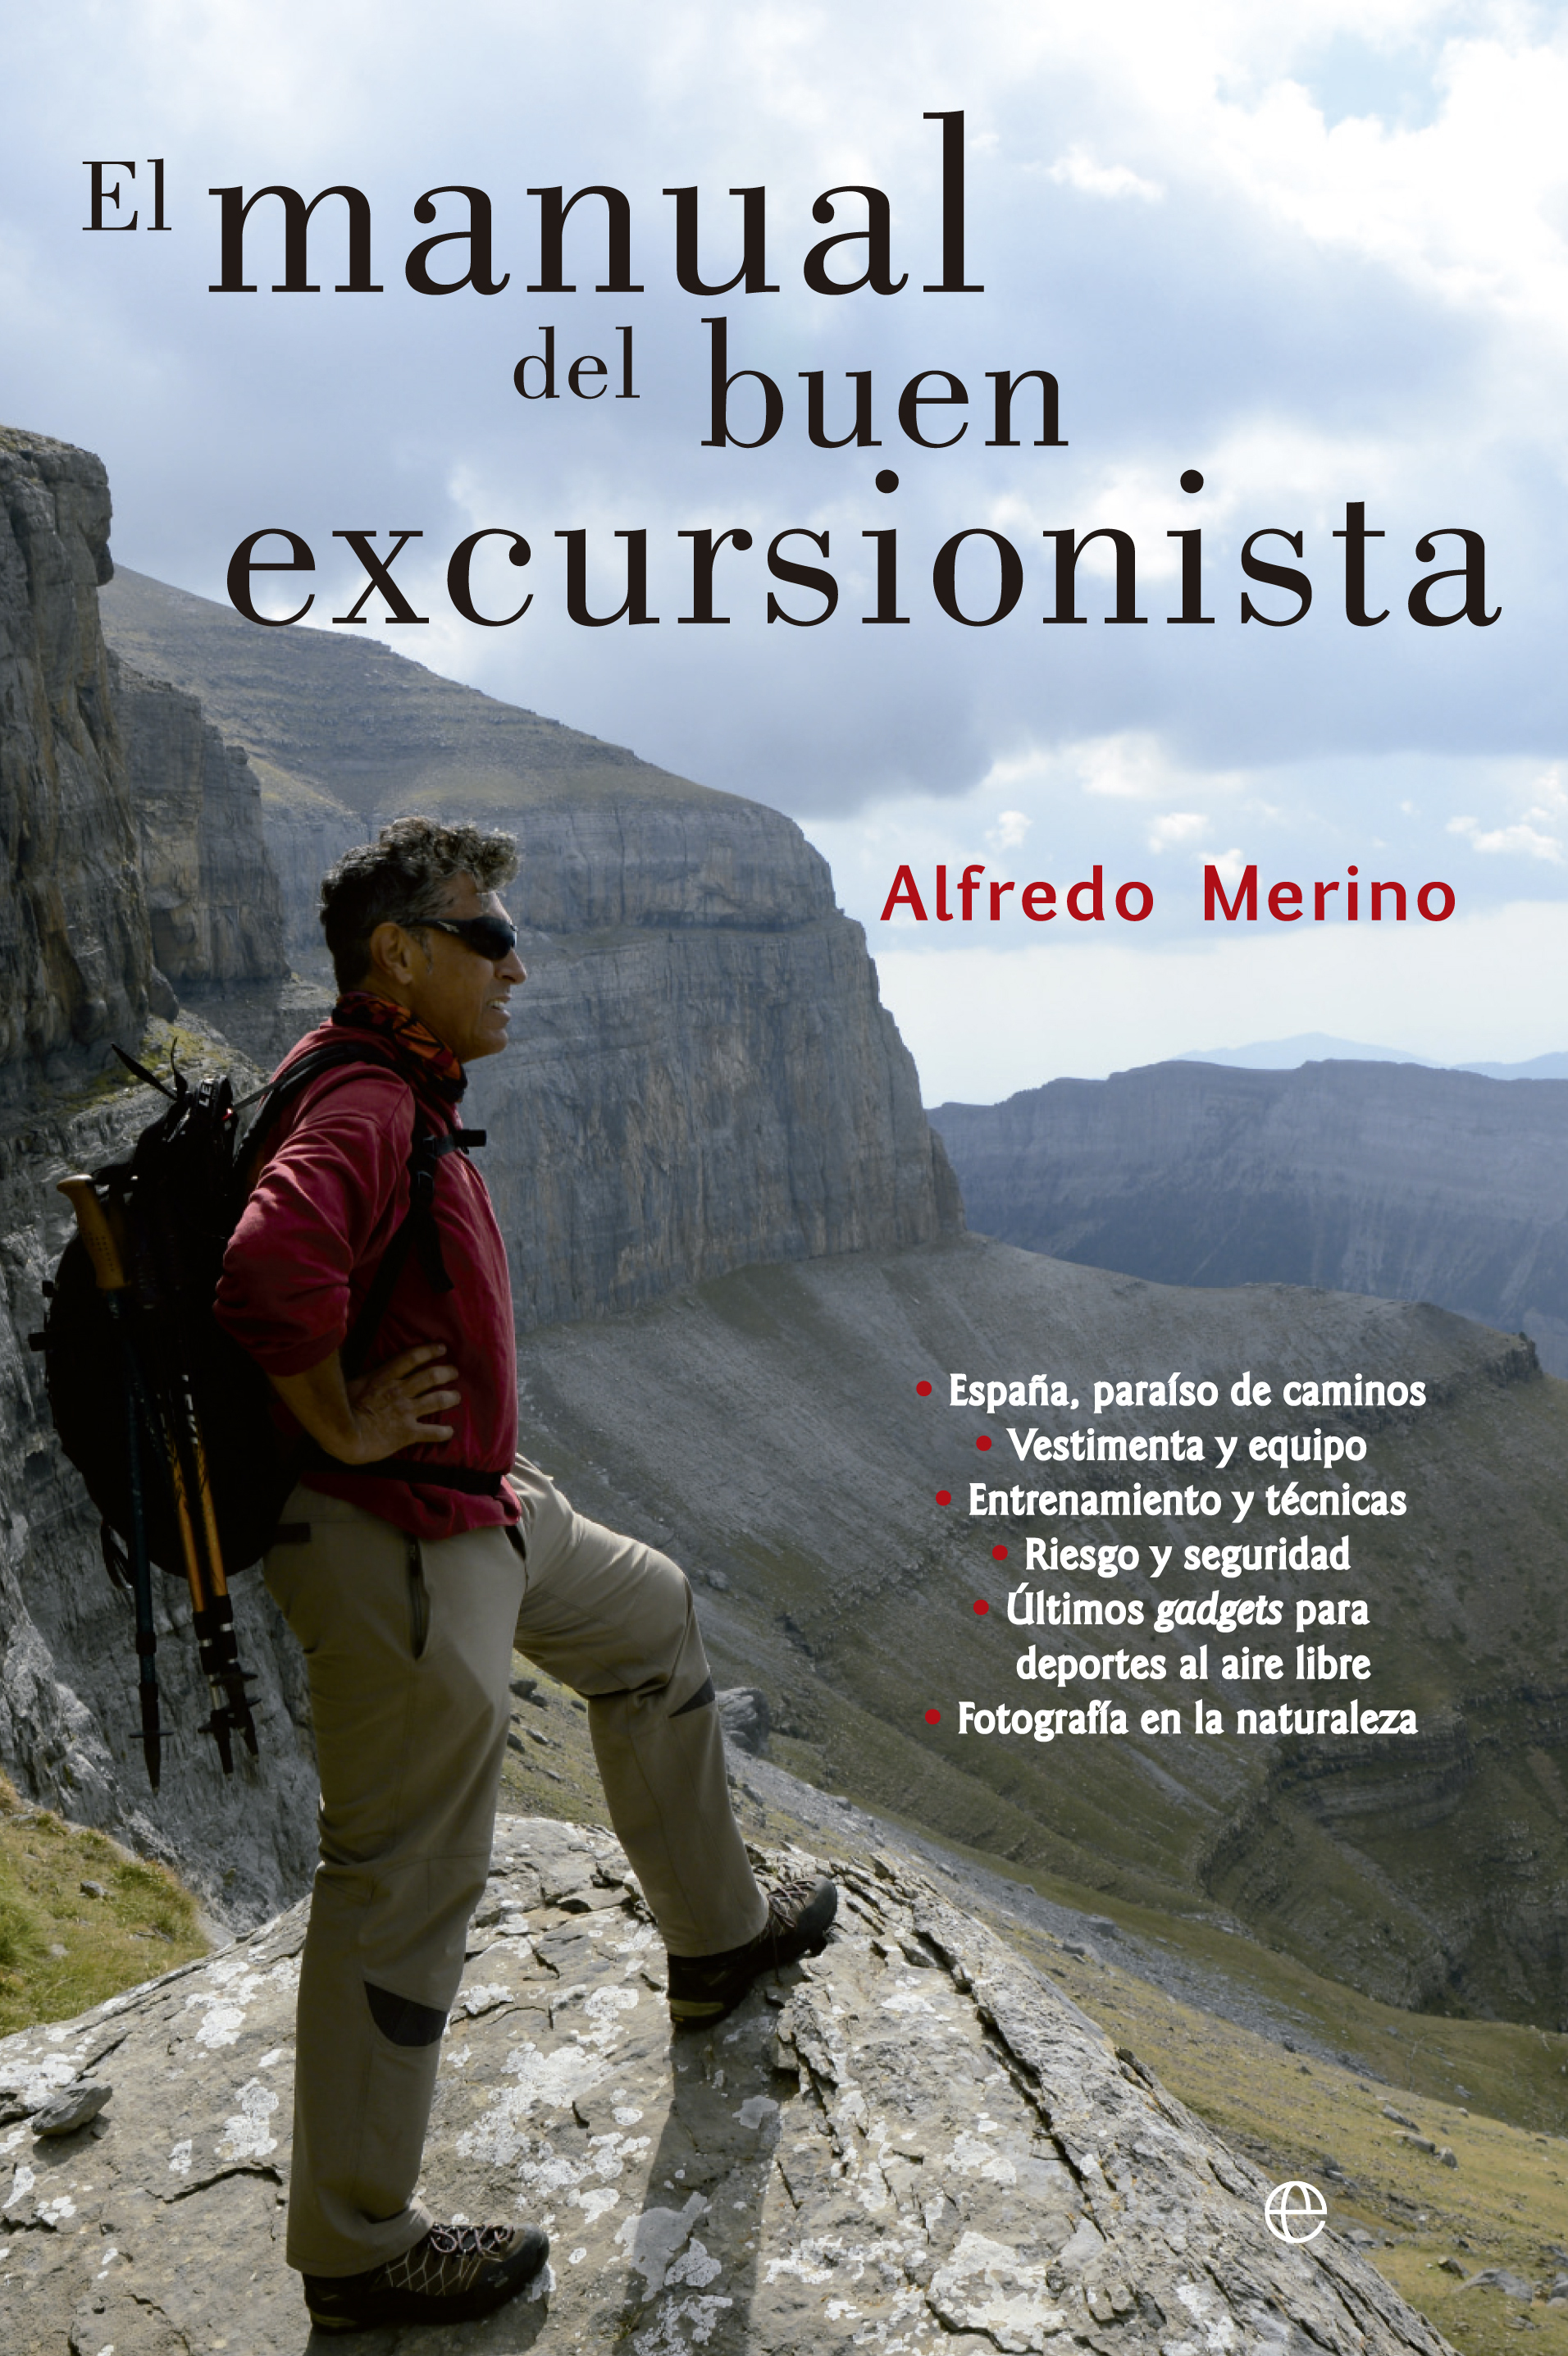 EL MANUAL DEL BUEN EXCURSIONISTA